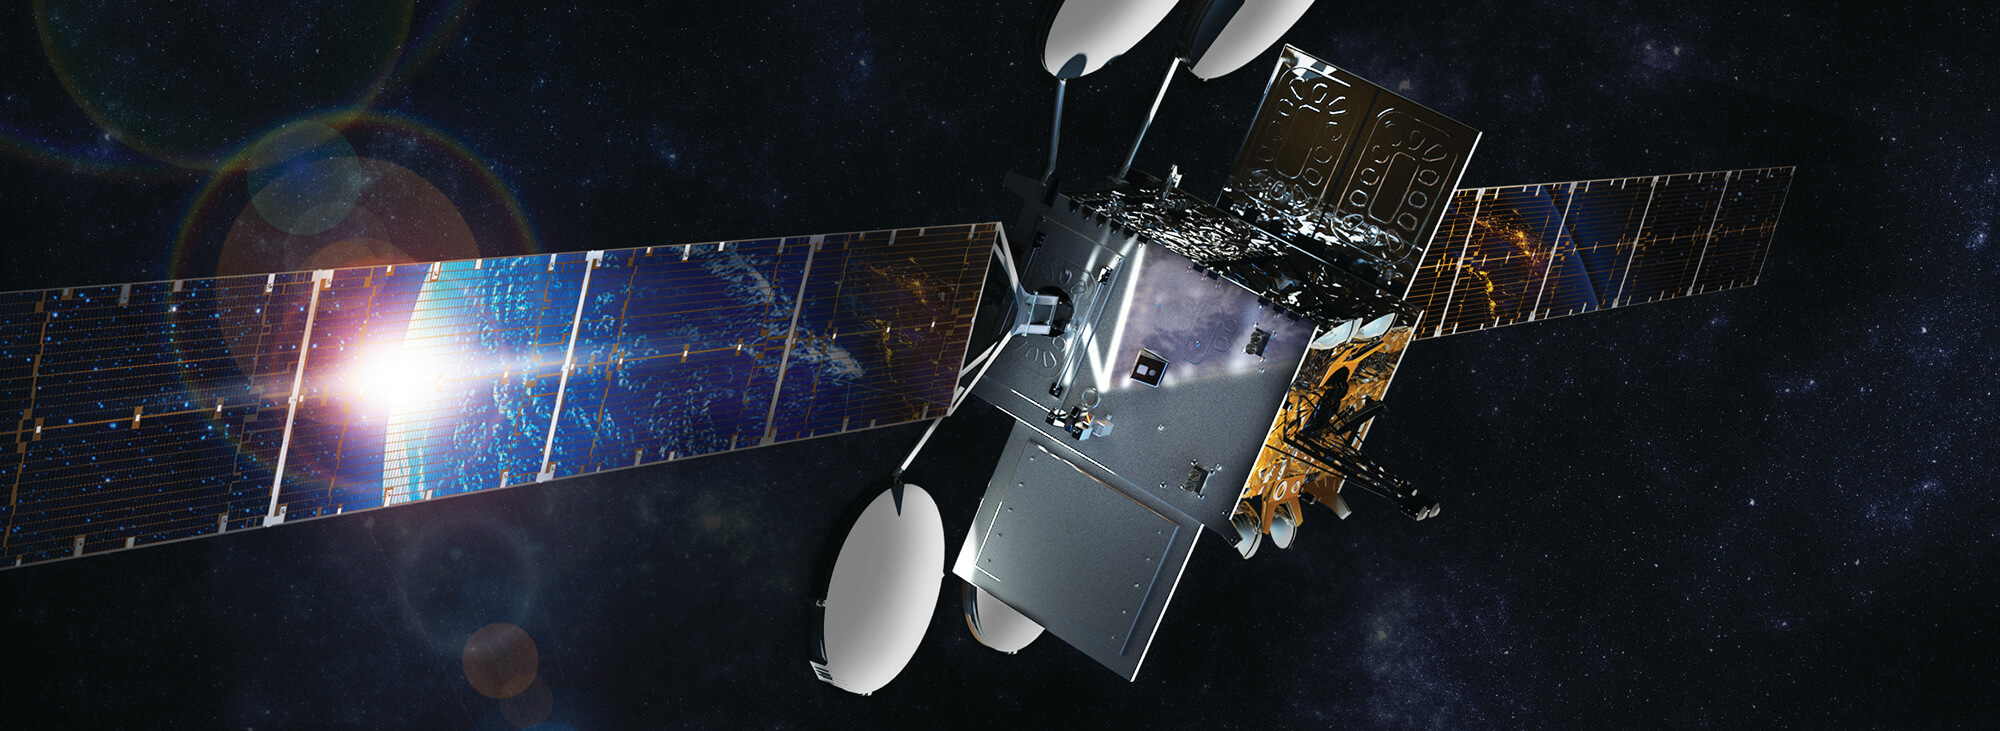 ViaSat-2 Satellite Rendering with Flare